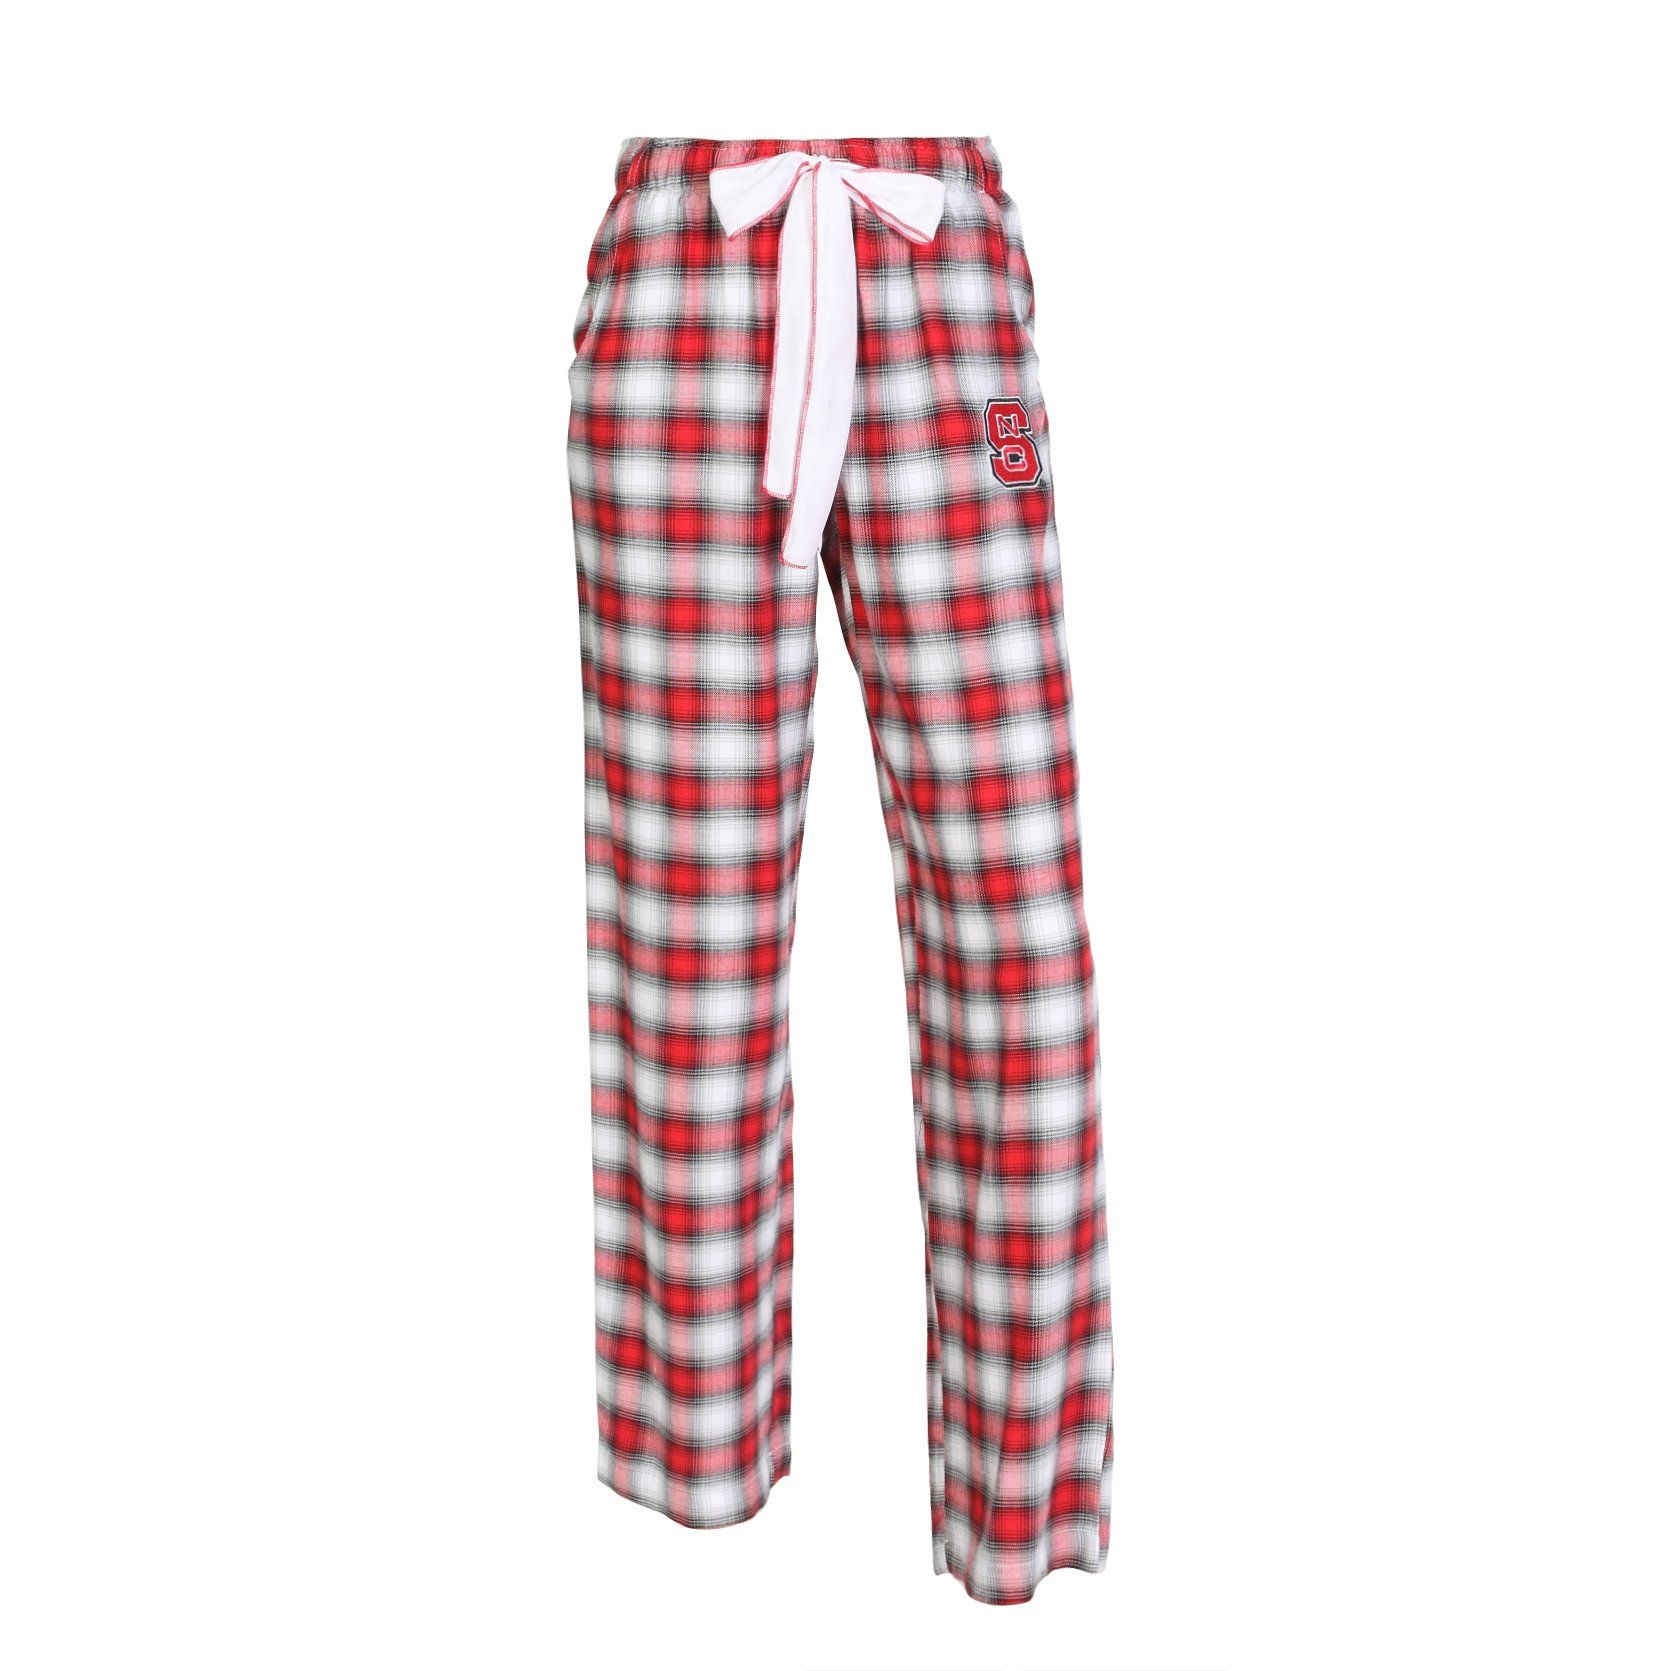 9ec9cfd329e2 North Carolina State Wolfpack Ladies Forge Flannel Pants Material: 55%  Cotton, 45% Rayon - Silk Drawstring Waist - Embroidered Logo - Officially  Licensed